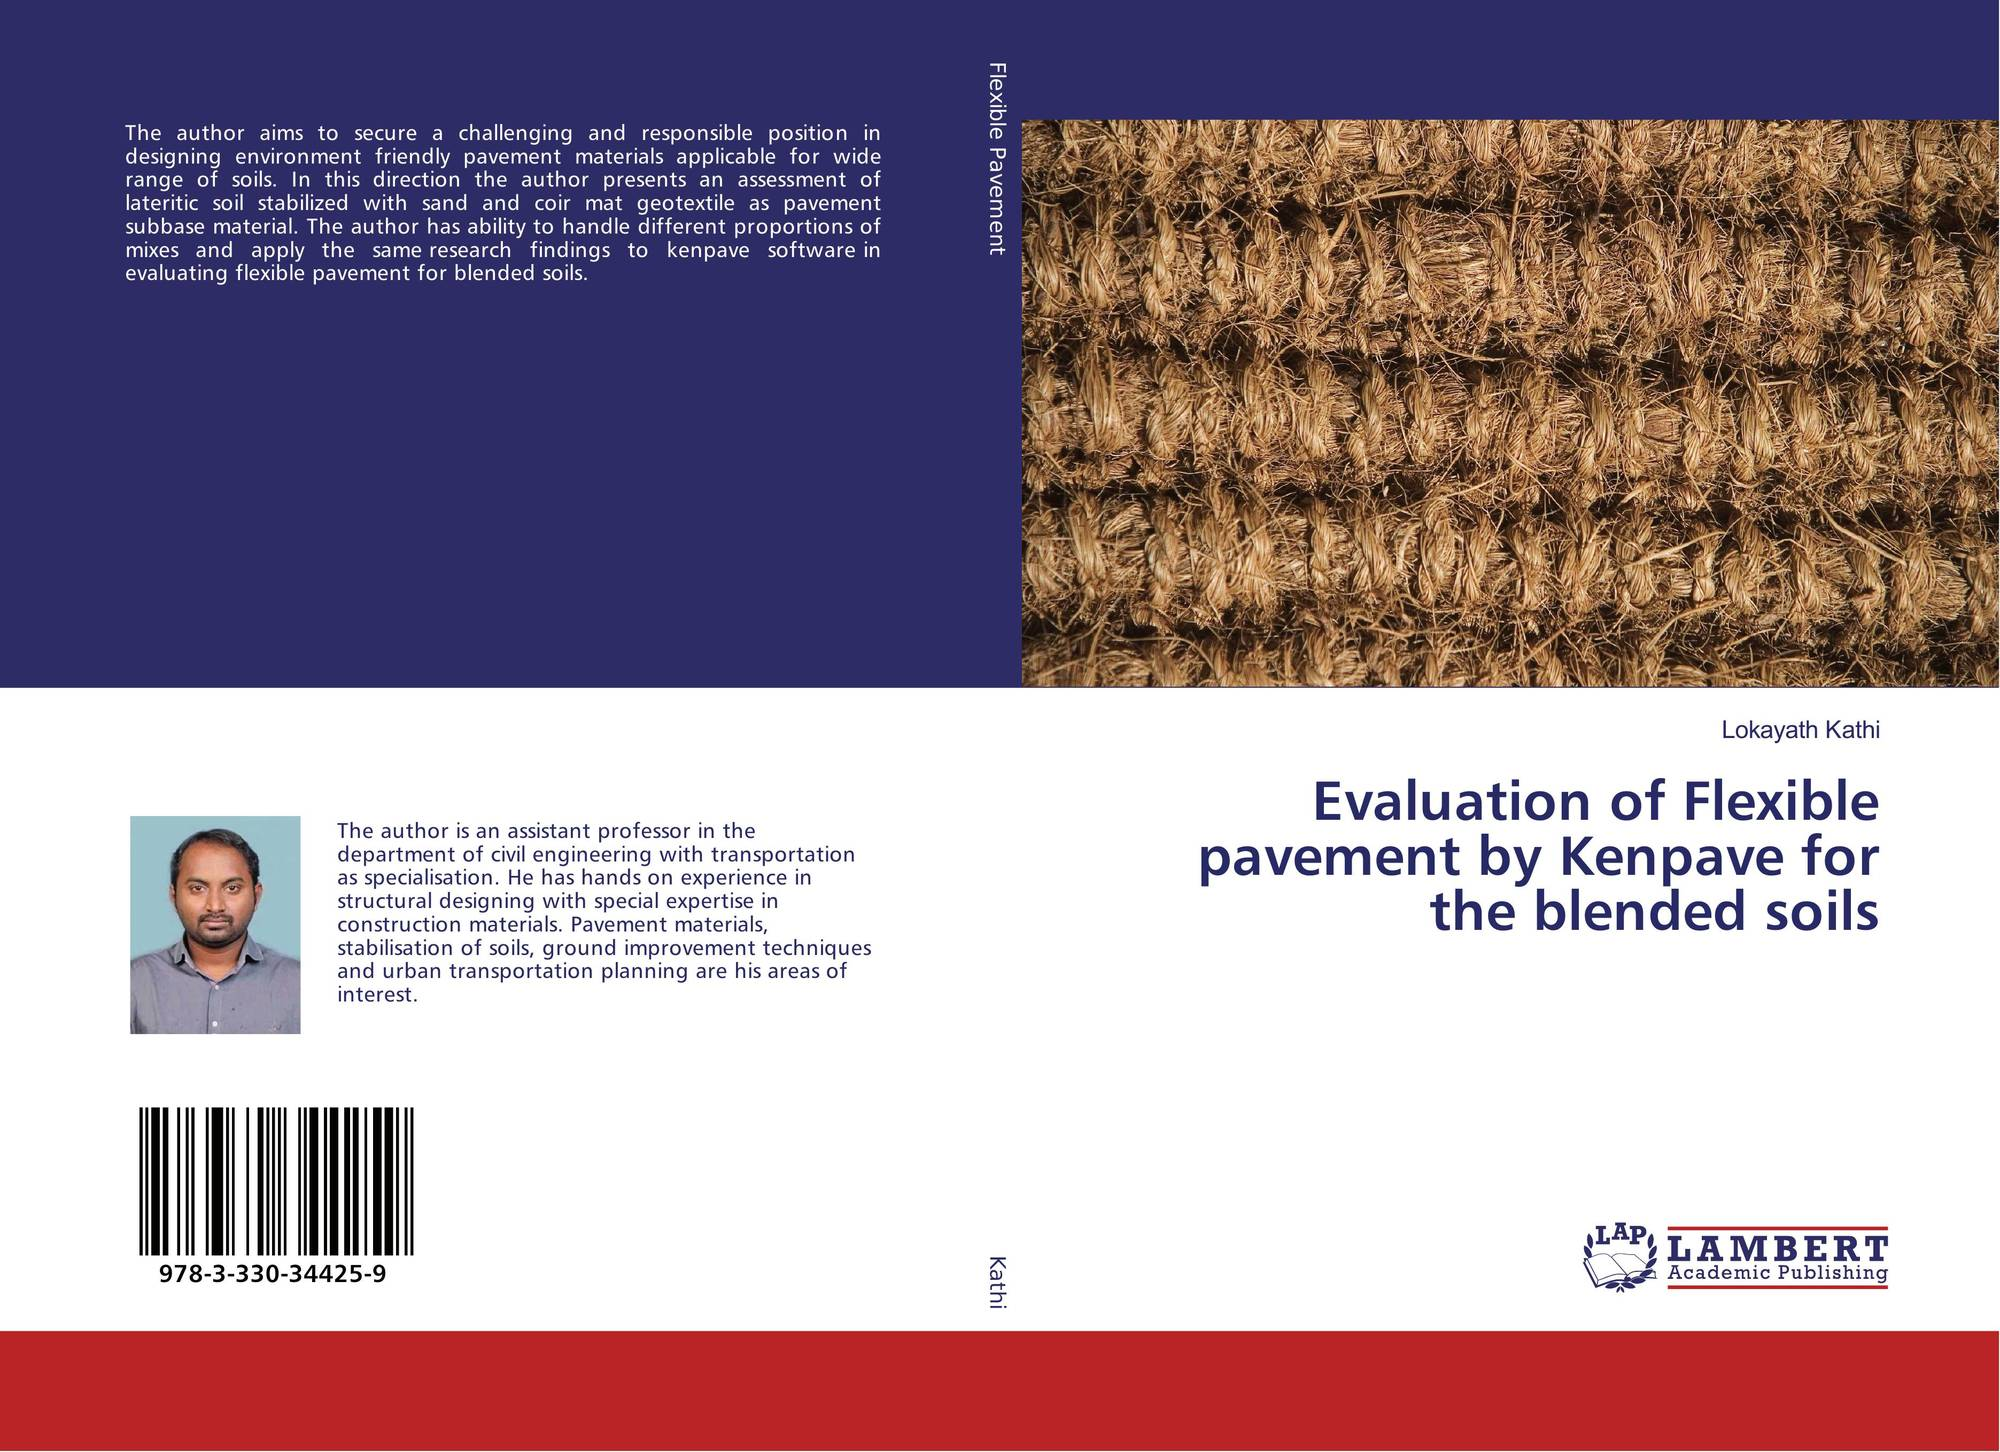 Evaluation Of Flexible Pavement By Kenpave For The Blended Soils 978 3 330 34425 9 3330344253 9783330344259 By Lokayath Kathi